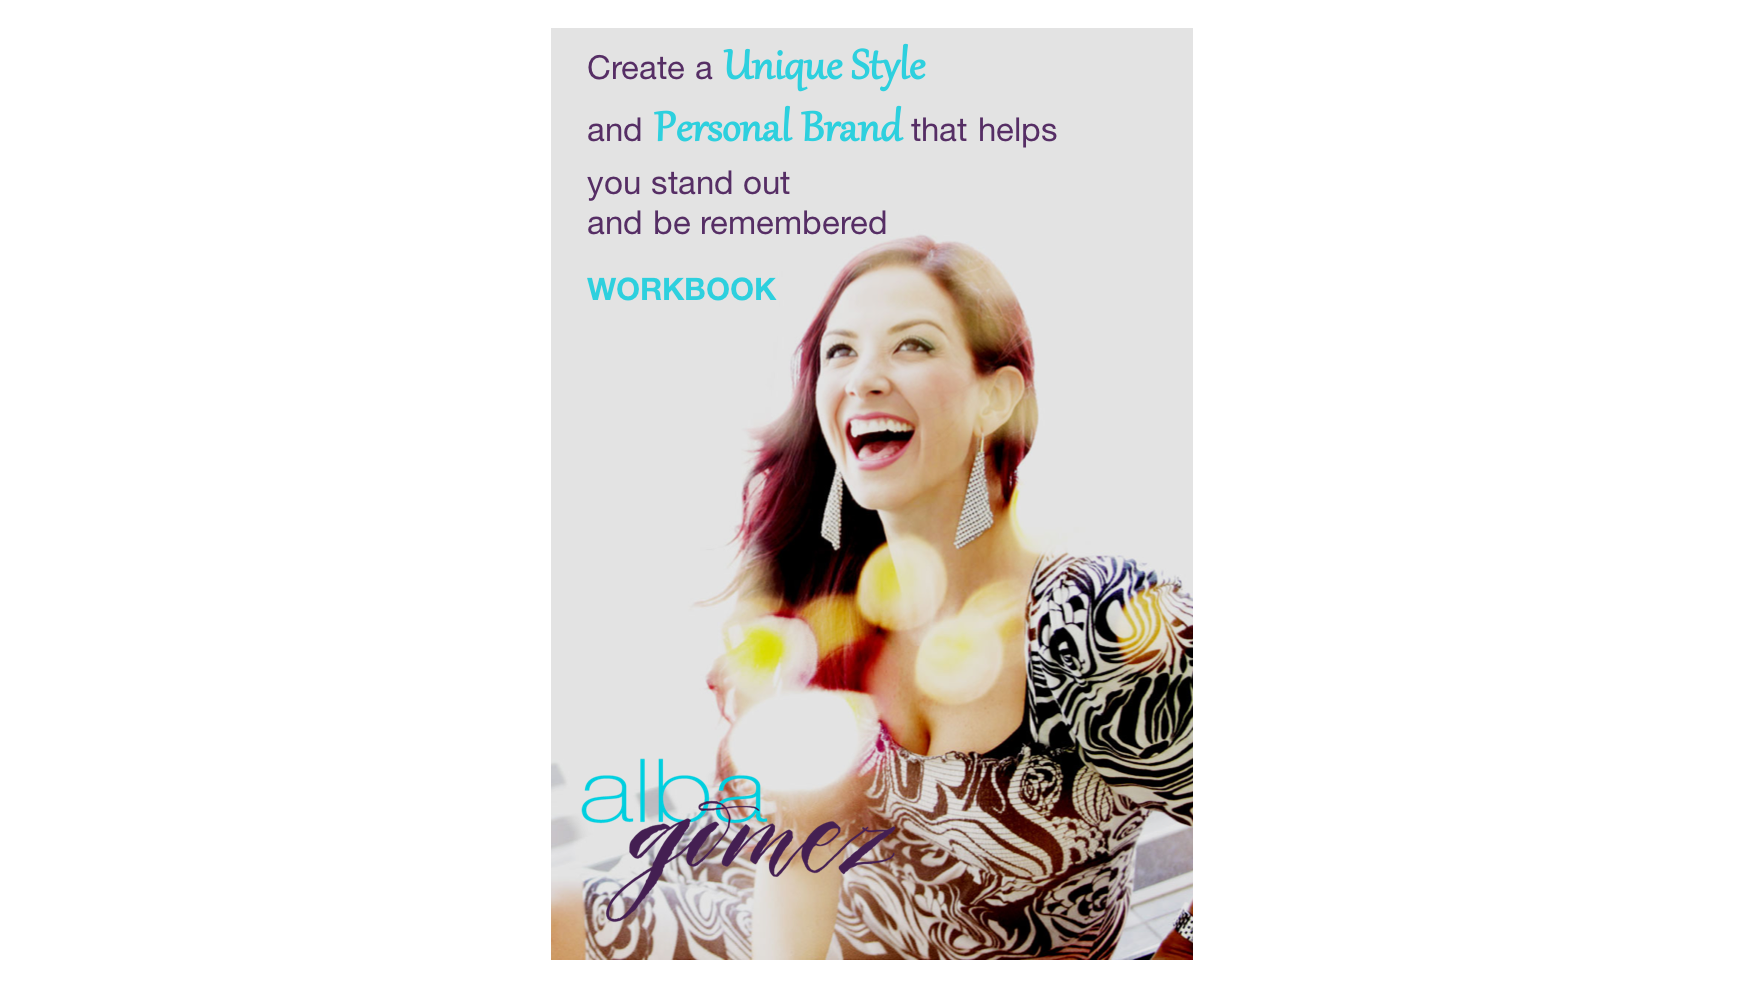 DOWNLOAD your workbook by clicking on the image above